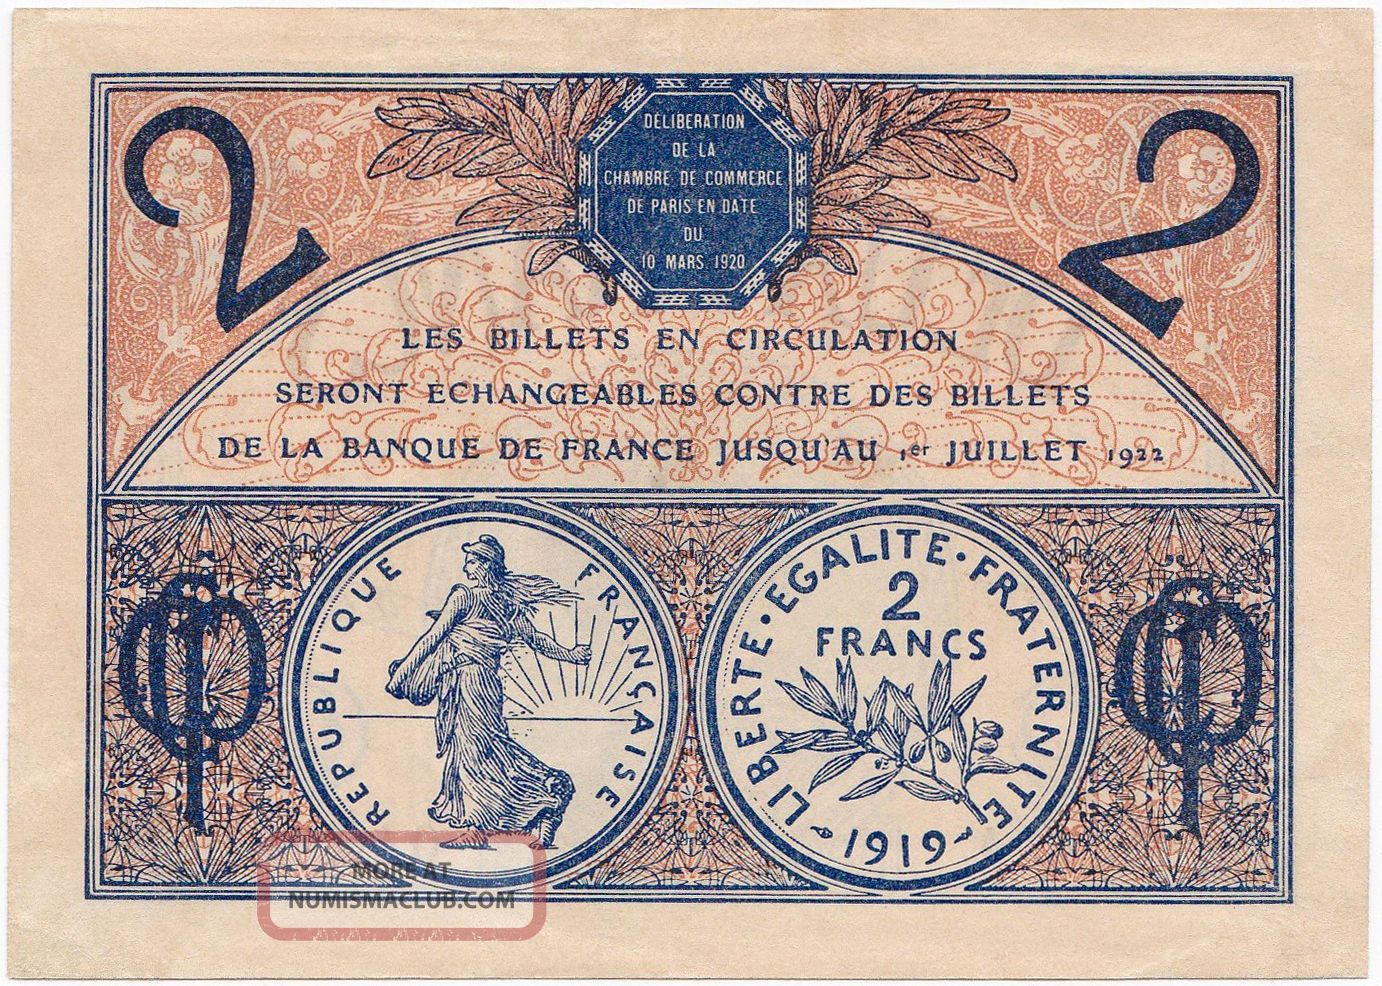 France 2 francs 1919 1922 xf chambre de commerce de paris for Chambre de commercre